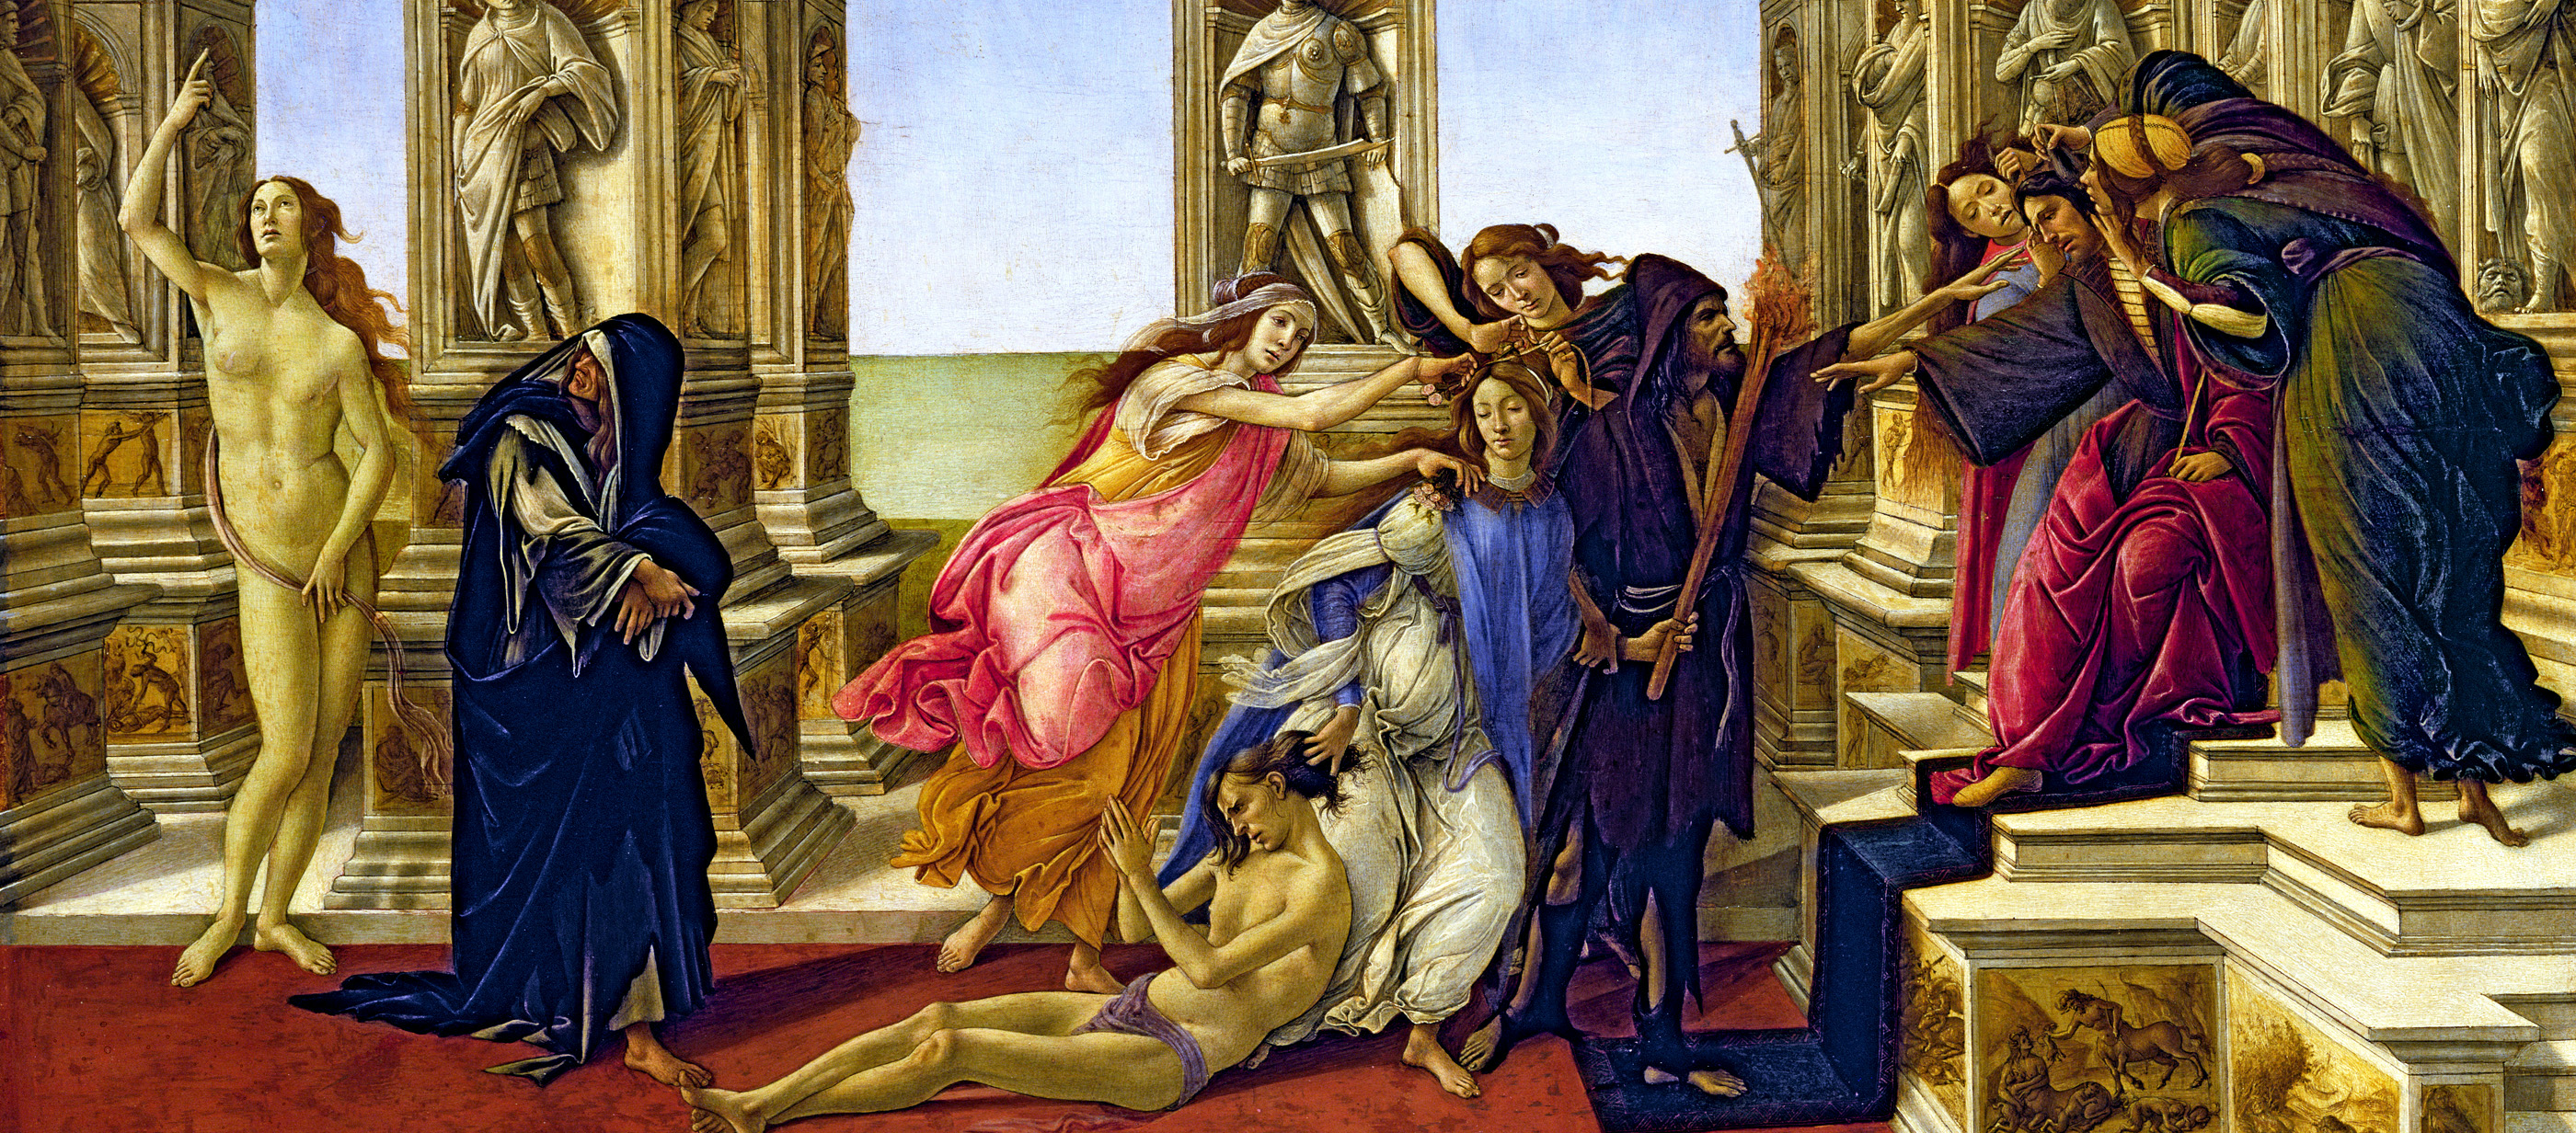 The Calumny of Apelles, by Sandro Botticelli, c. 1495